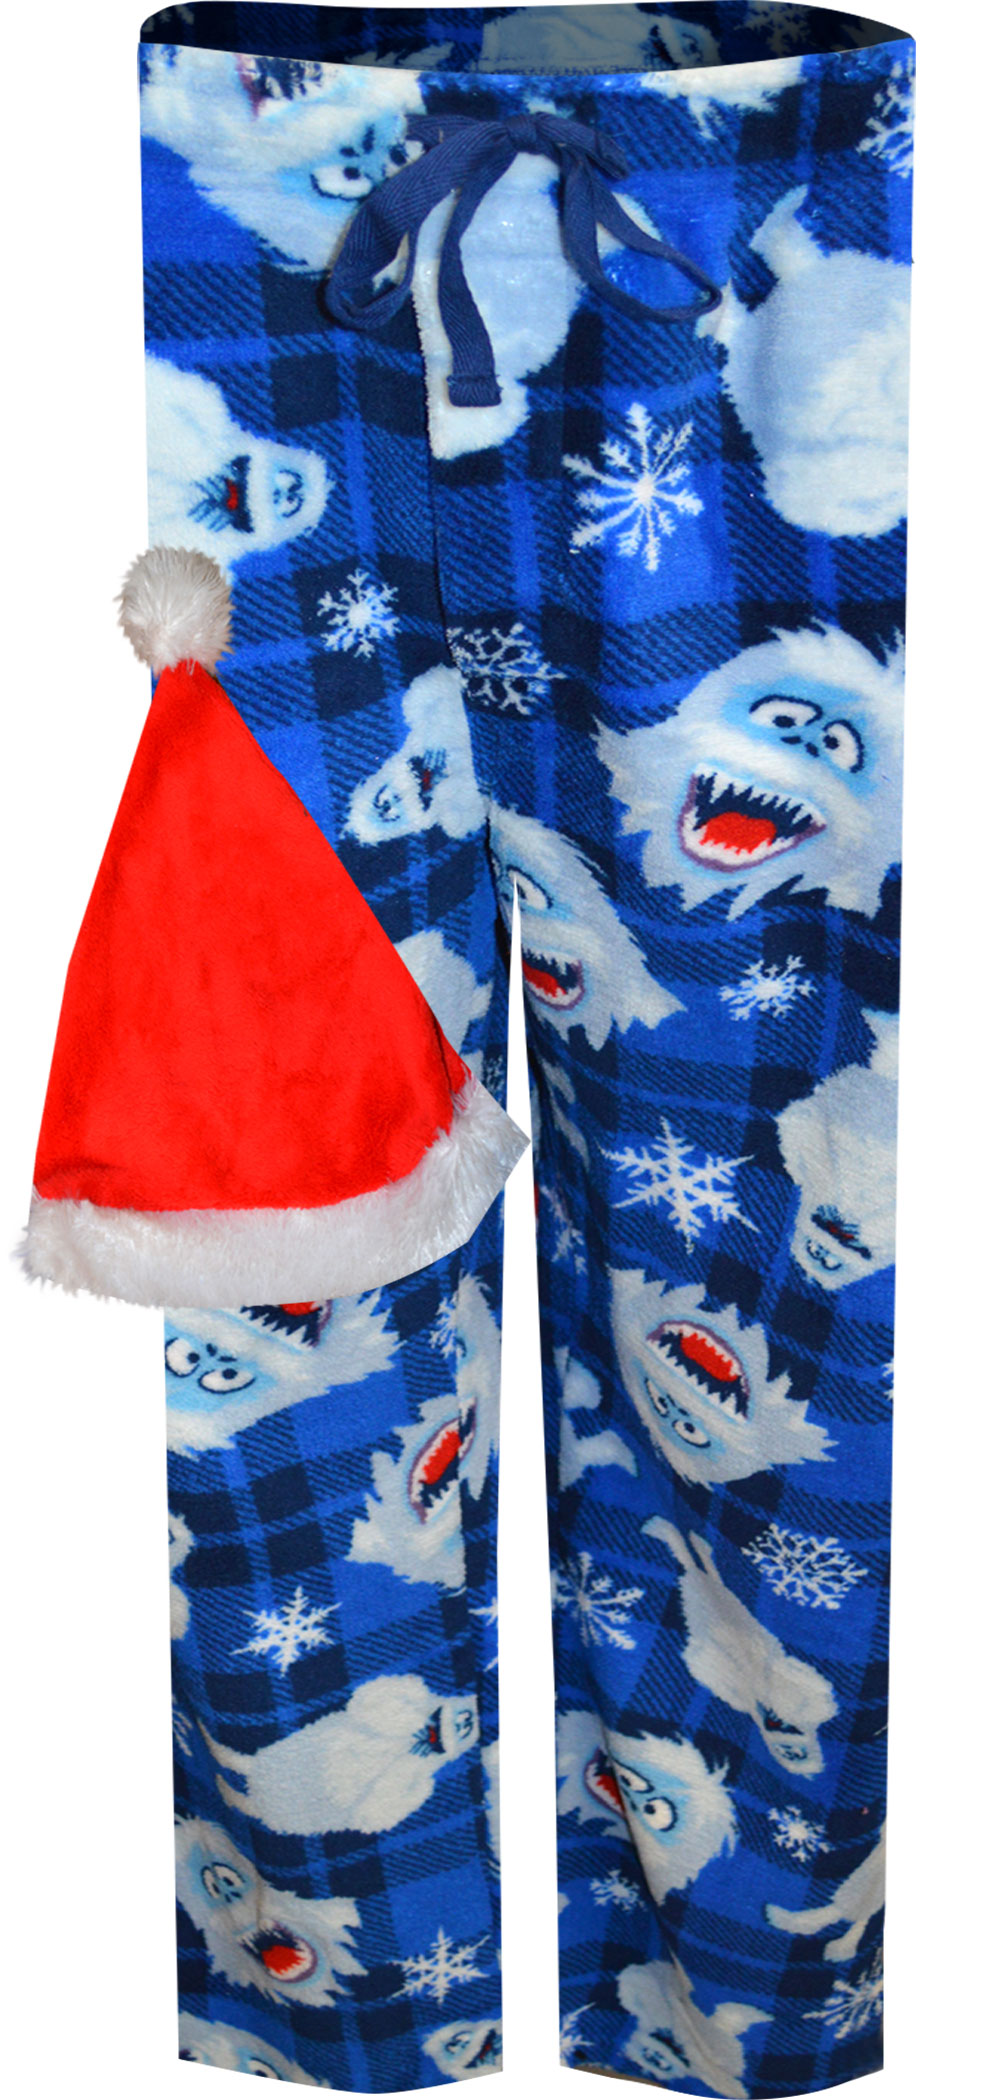 Image of Rudolph The Red-Nosed Reindeer Bumble Plush Lounge Pants with Santa Hat for men